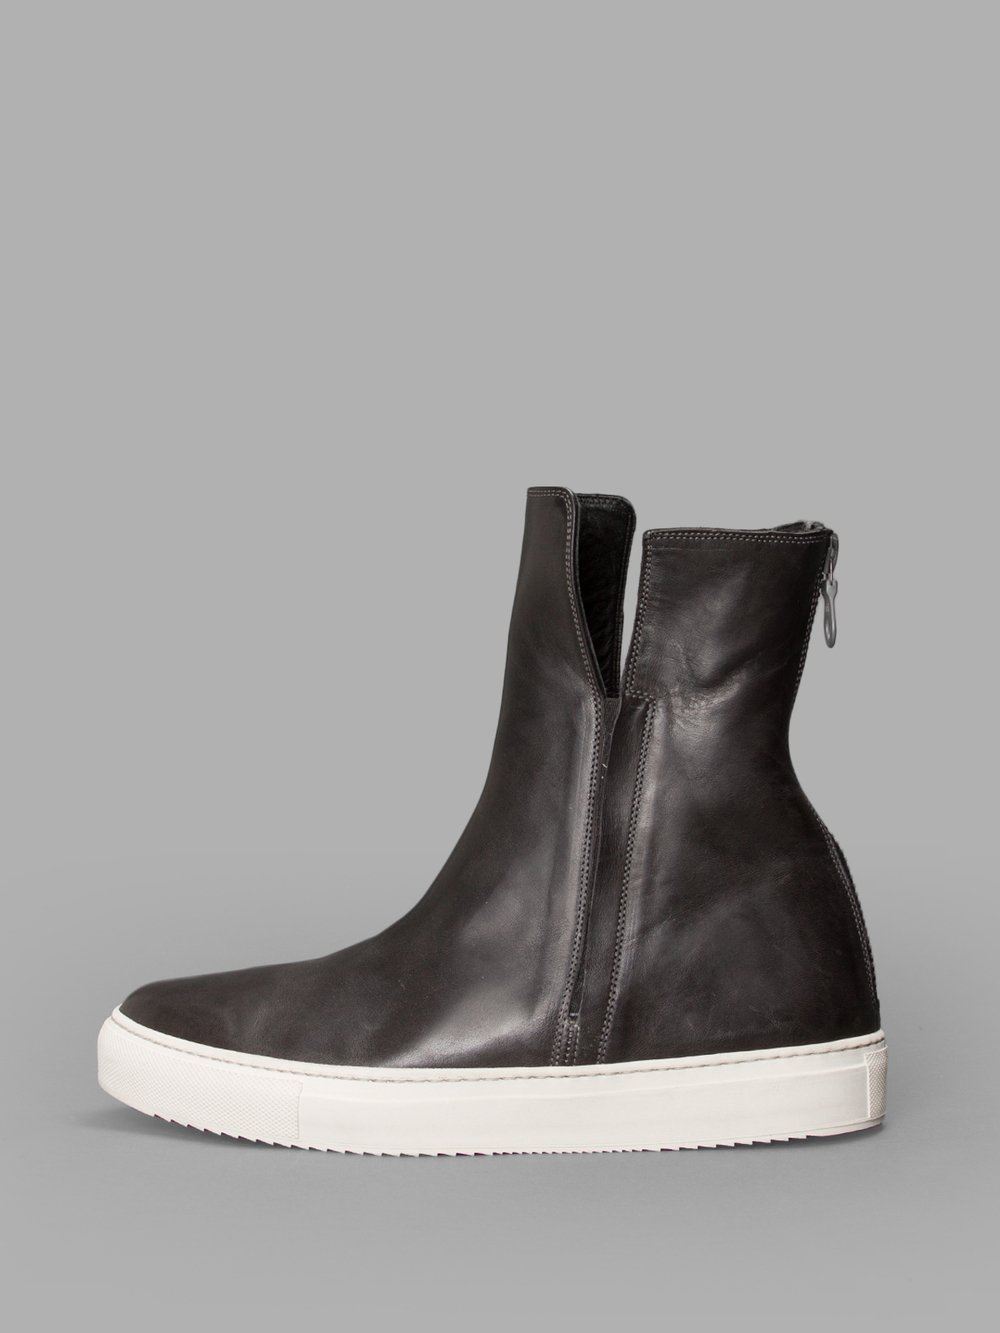 DELLE COSE Black High Top Sneakers